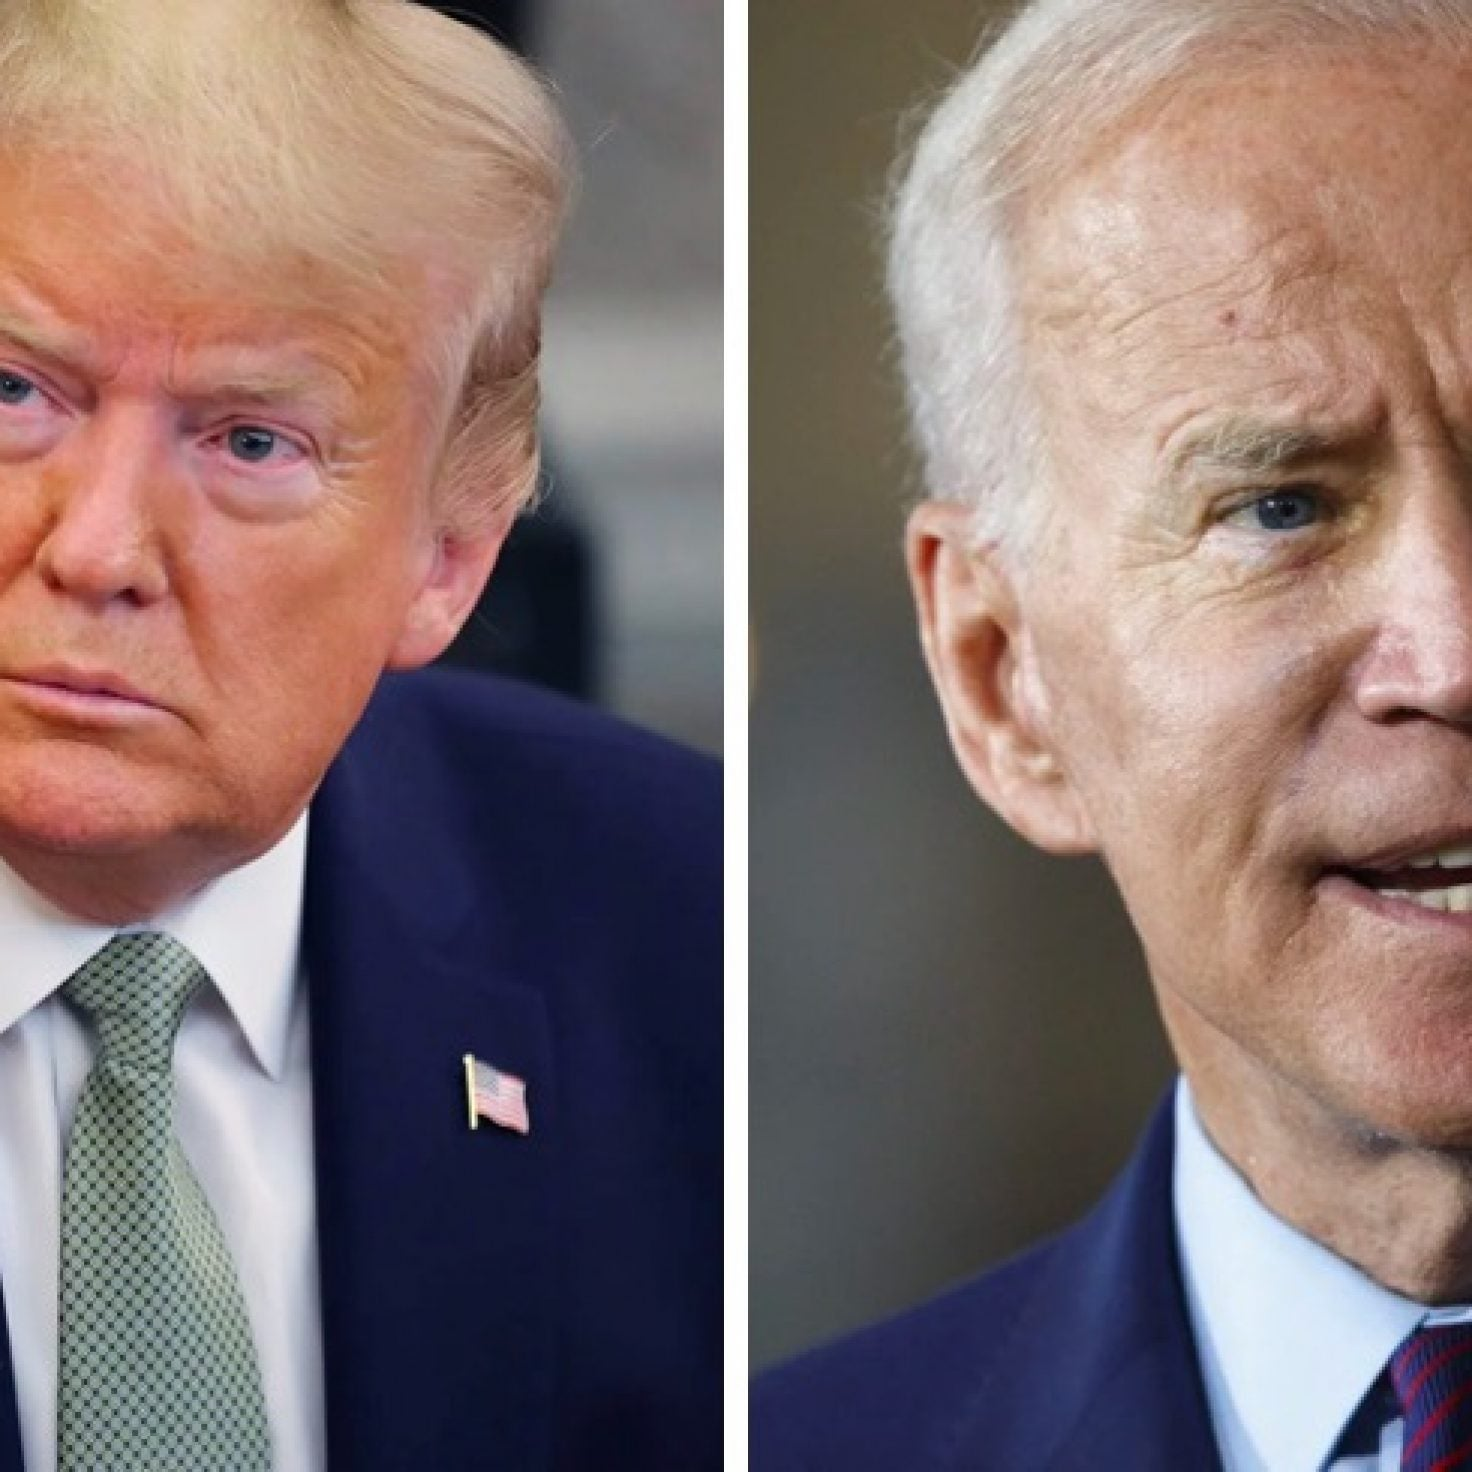 Biden Campaign Brings In Three Times The Amount Of Trump's In March